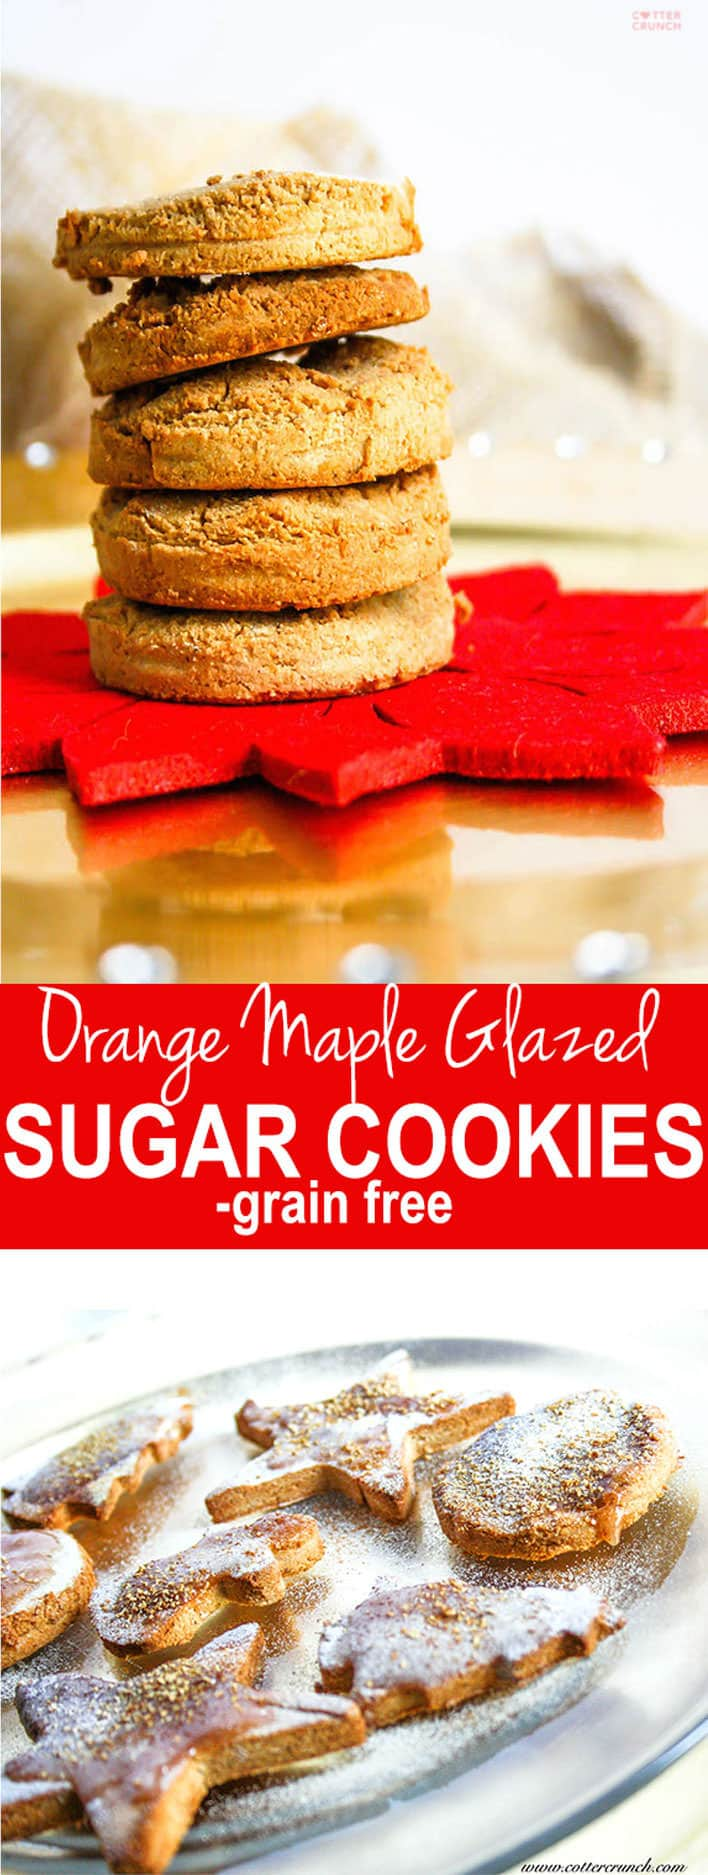 A sweet and refreshing twist on your average holiday cookie! Grain Free and Paleo friendly! Orange Maple glazed sugar cookies are great for sharing.